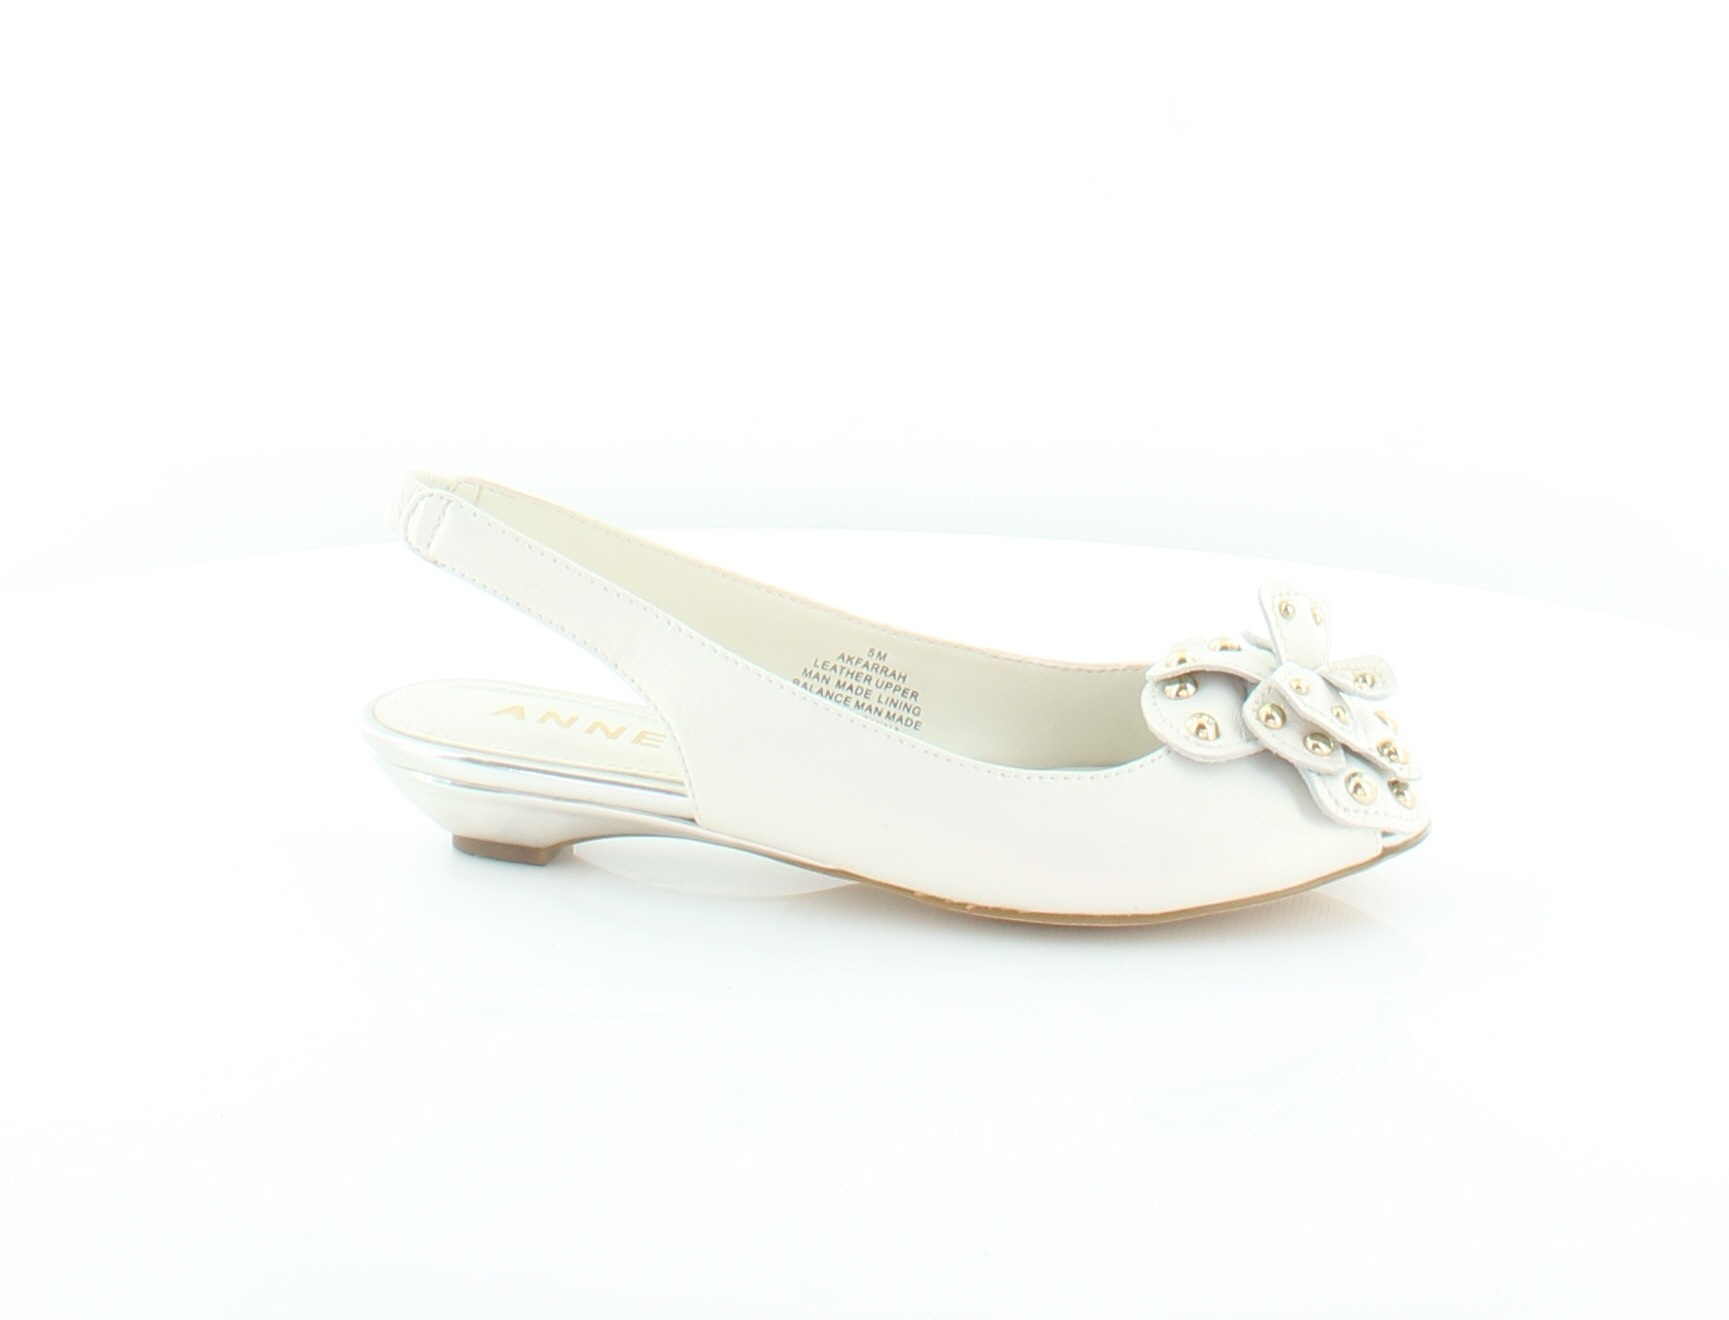 2c87baf4a0b Anne Klein Farrah Ivory Womens Shoes Size 5 M Sandals MSRP  85 1 of 5FREE  Shipping ...